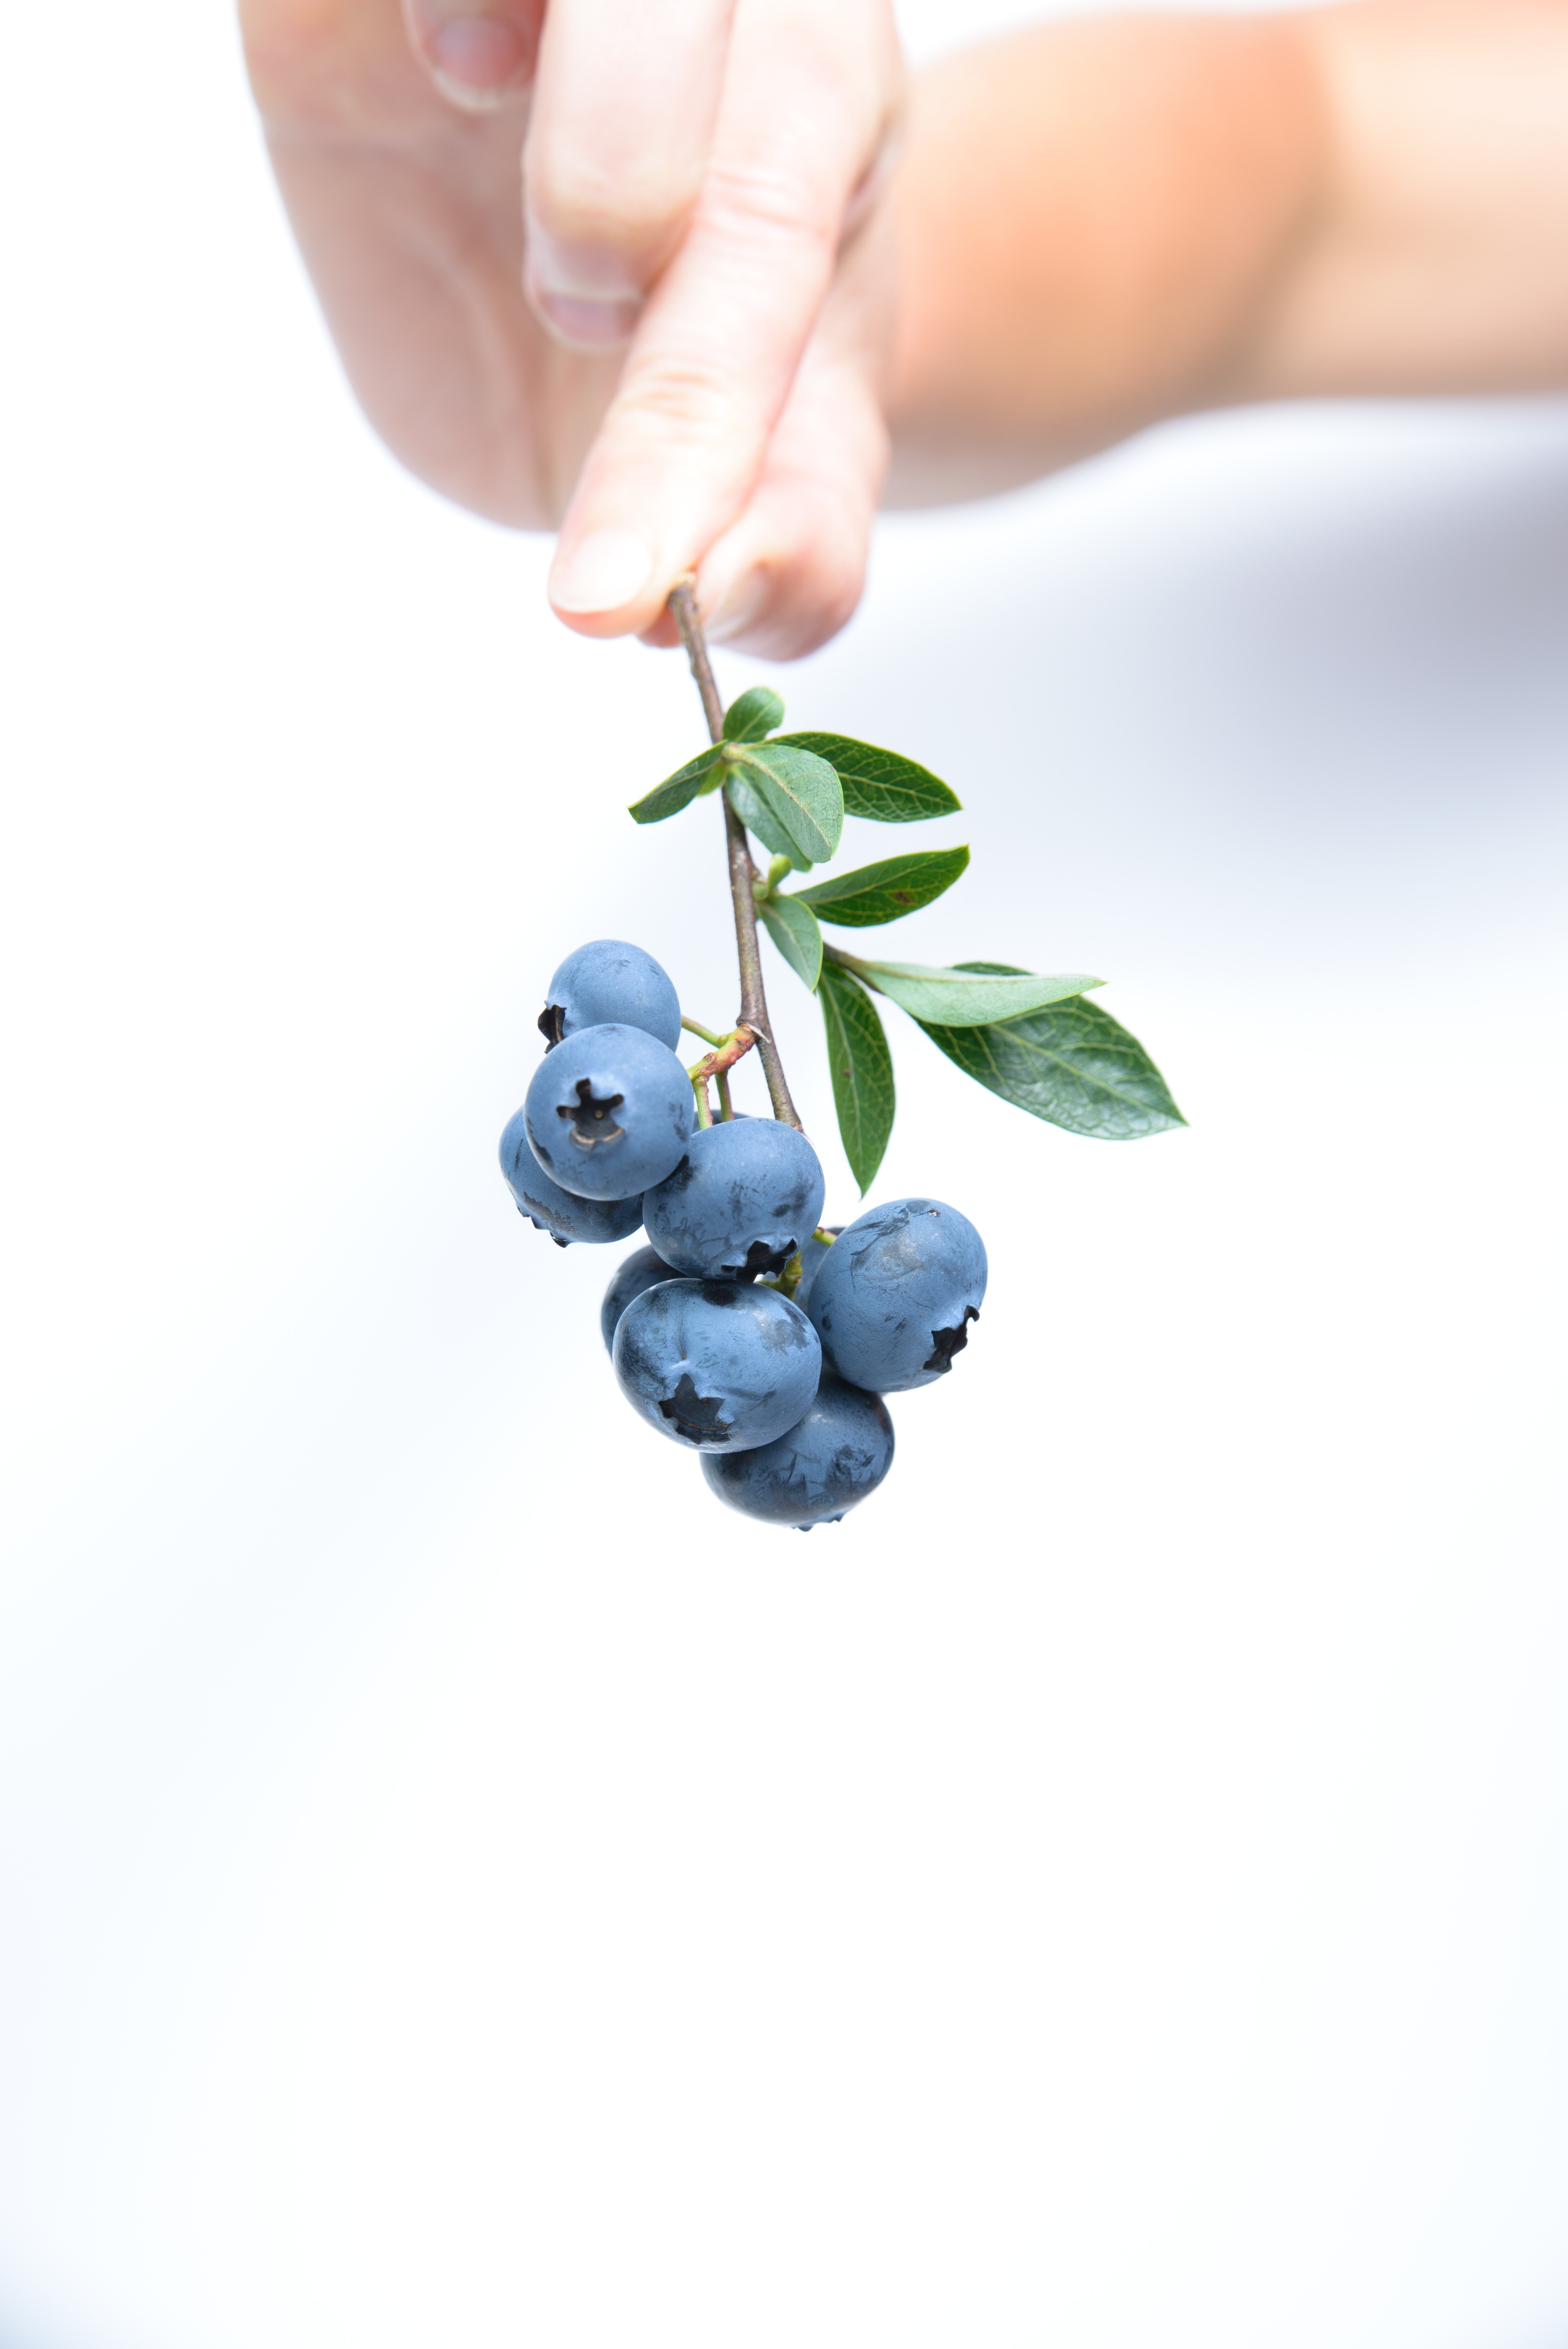 Person Holding Black Currants · Free Stock Photo